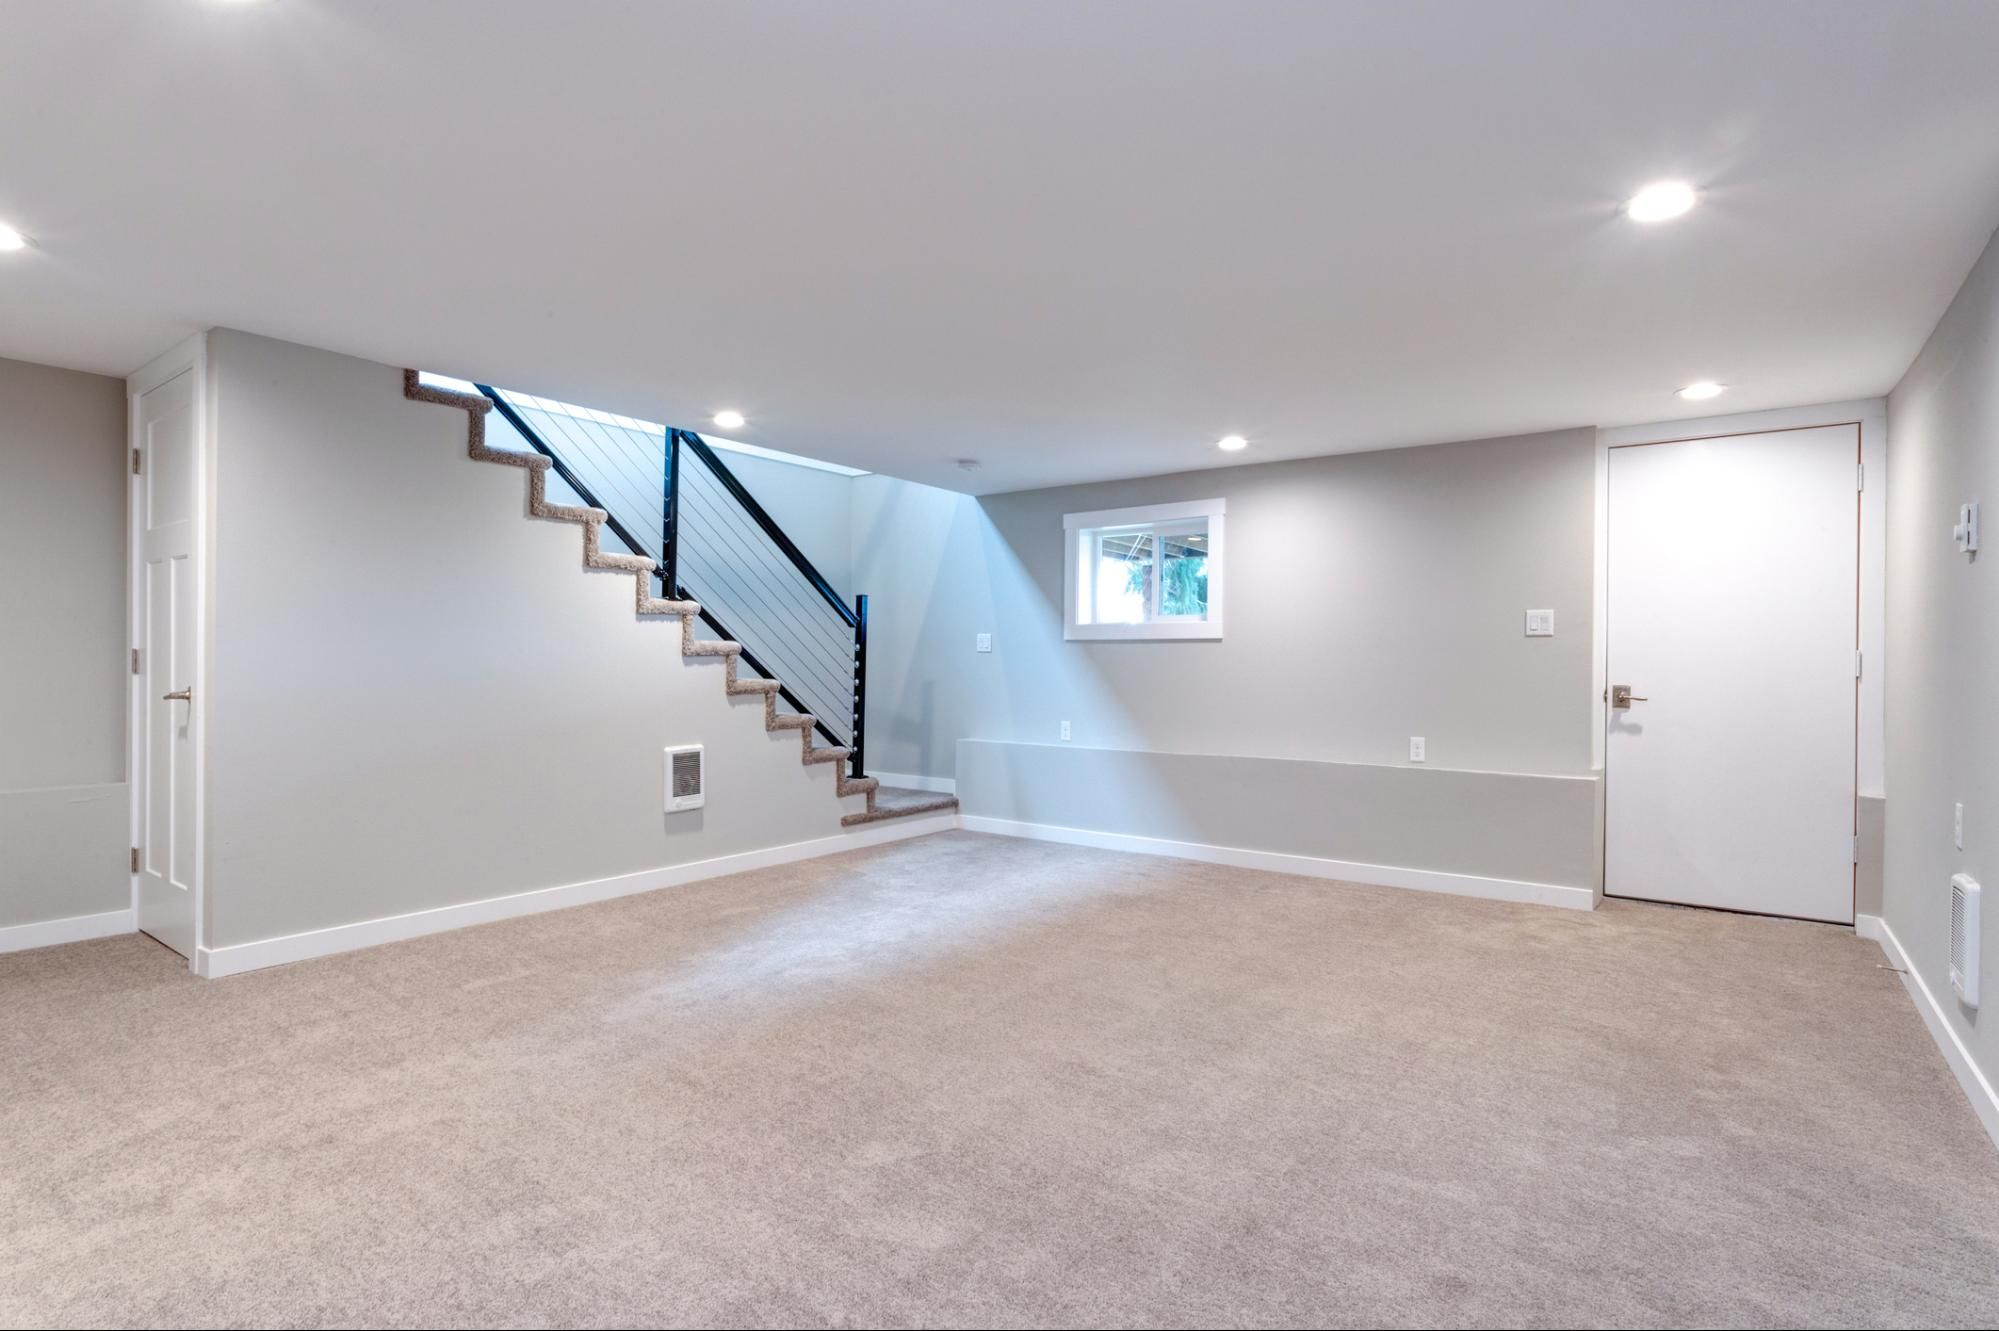 Finish A Basement Cheap In 2020 Cost To Finish Basement Basement Remodel Cost Finishing Basement